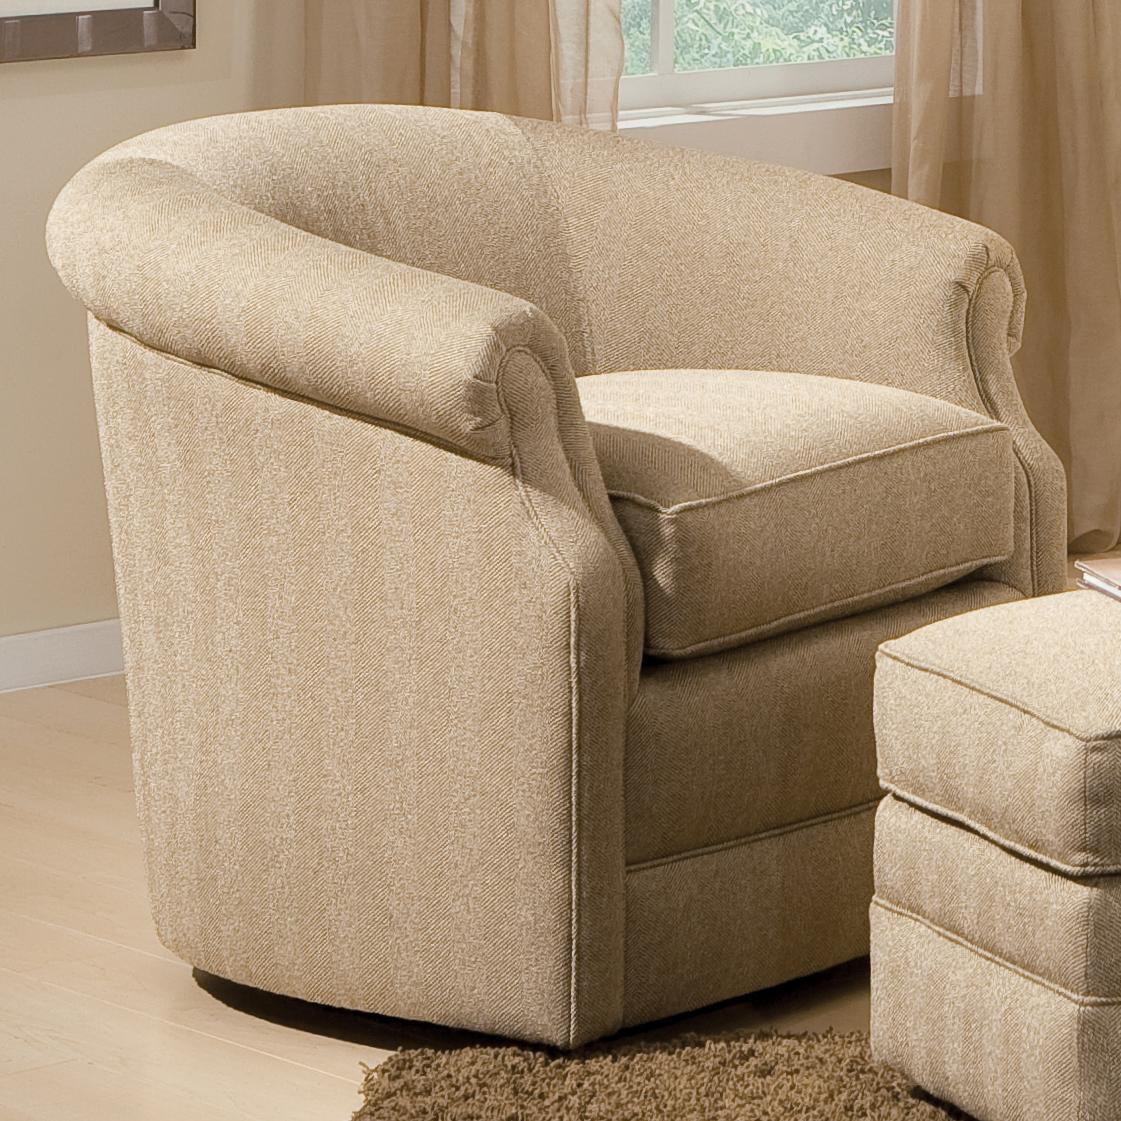 Accent Chairs and Ottomans SB Barrel Swivel Chair by Smith Brothers at Sprintz Furniture